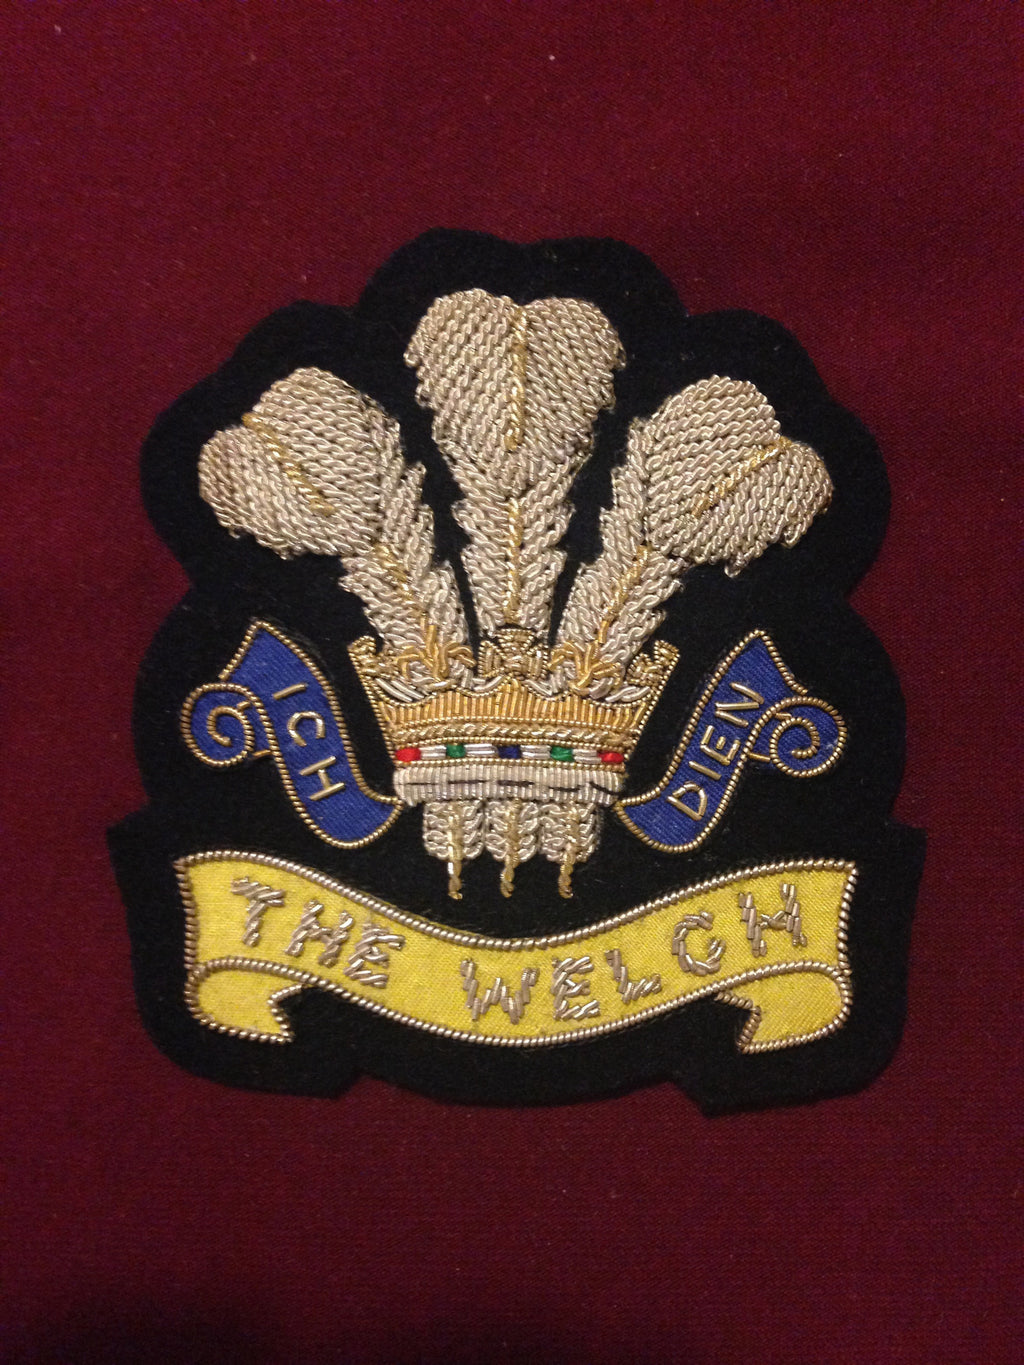 The Welch Regiment Blazer badge